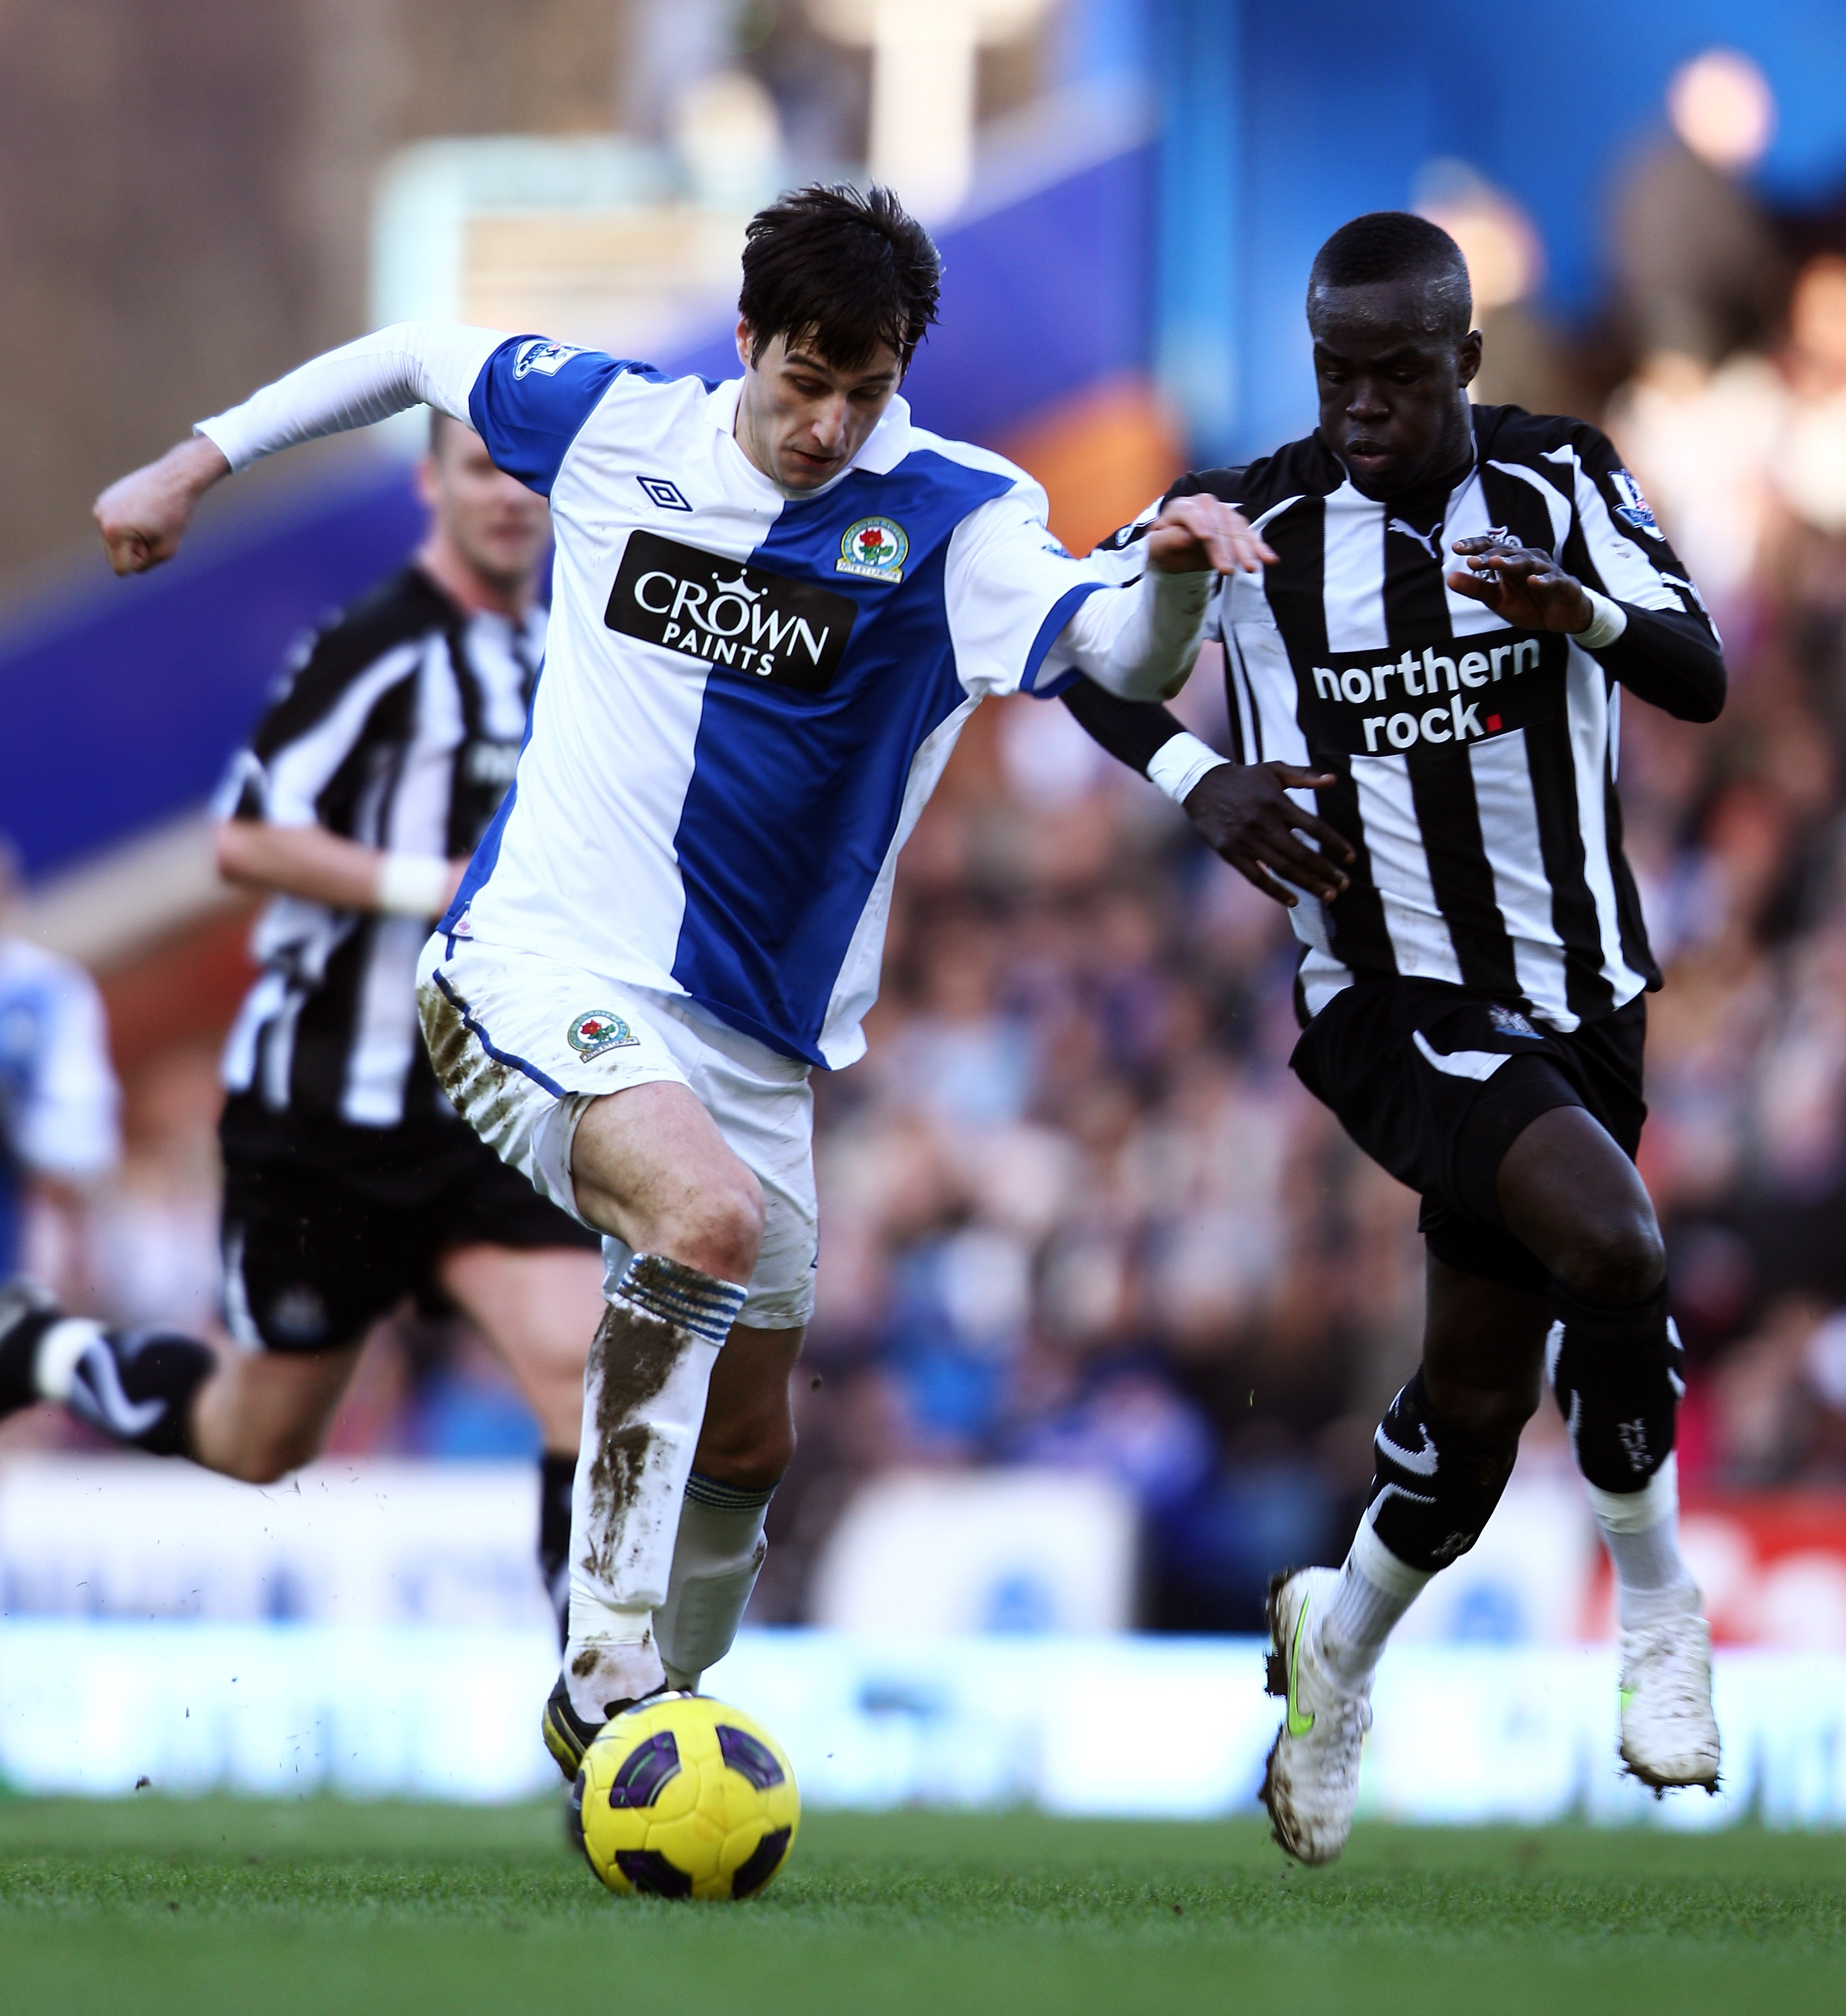 BLACKBURN, ENGLAND - FEBRUARY 12:  Nikola Kalinic of Blackburn and Cheik Tiote of Newcastle chase the ball during the Barclays Premier League match between Blackburn Rovers and Newcastle United at Ewood Park on February 12, 2011 in Blackburn, England.  (P